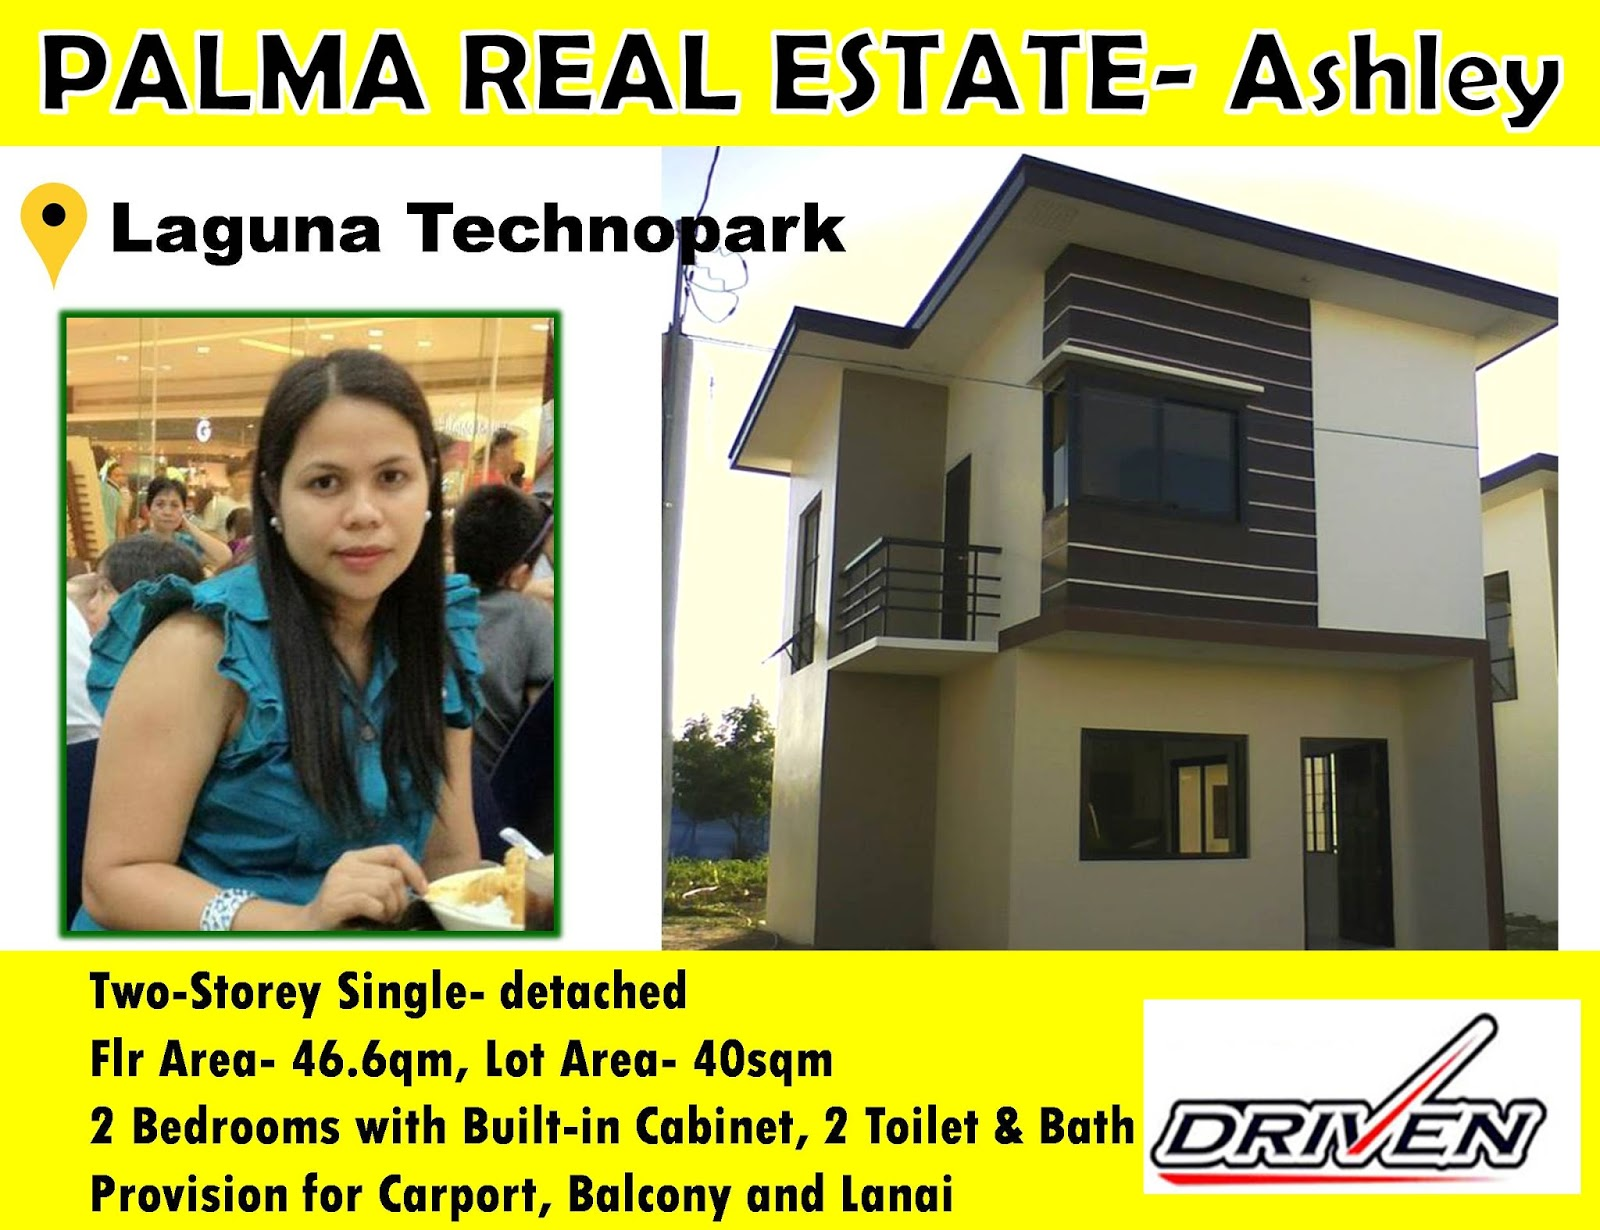 Low Cost Housing In The Philippines Palma Real Residential Estates Single Detached House And Lot In Laguna